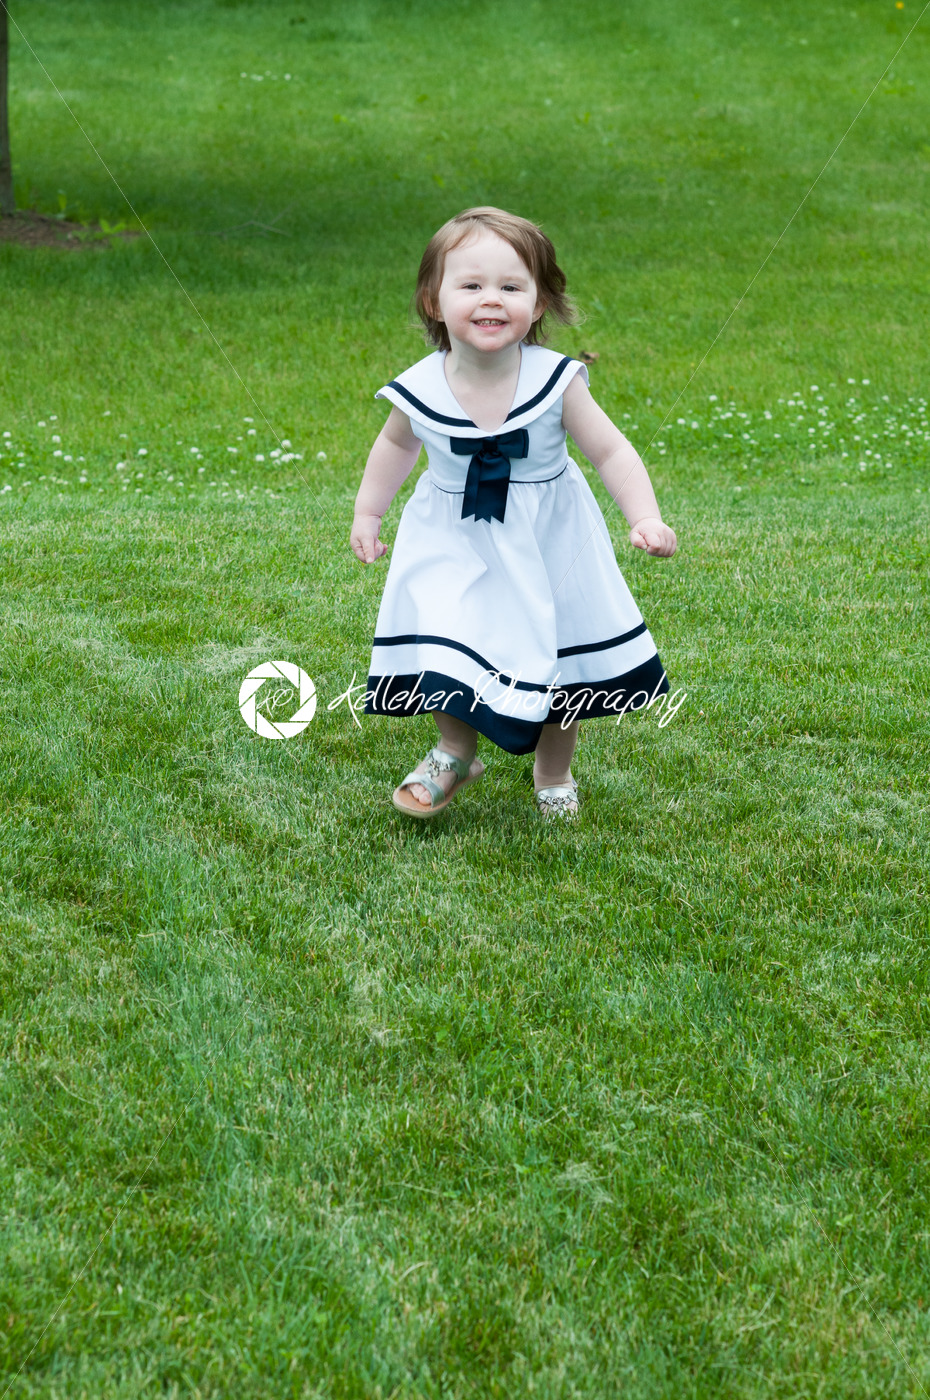 Portrait of a cute adorable little girl child in dress running on grass - Kelleher Photography Store